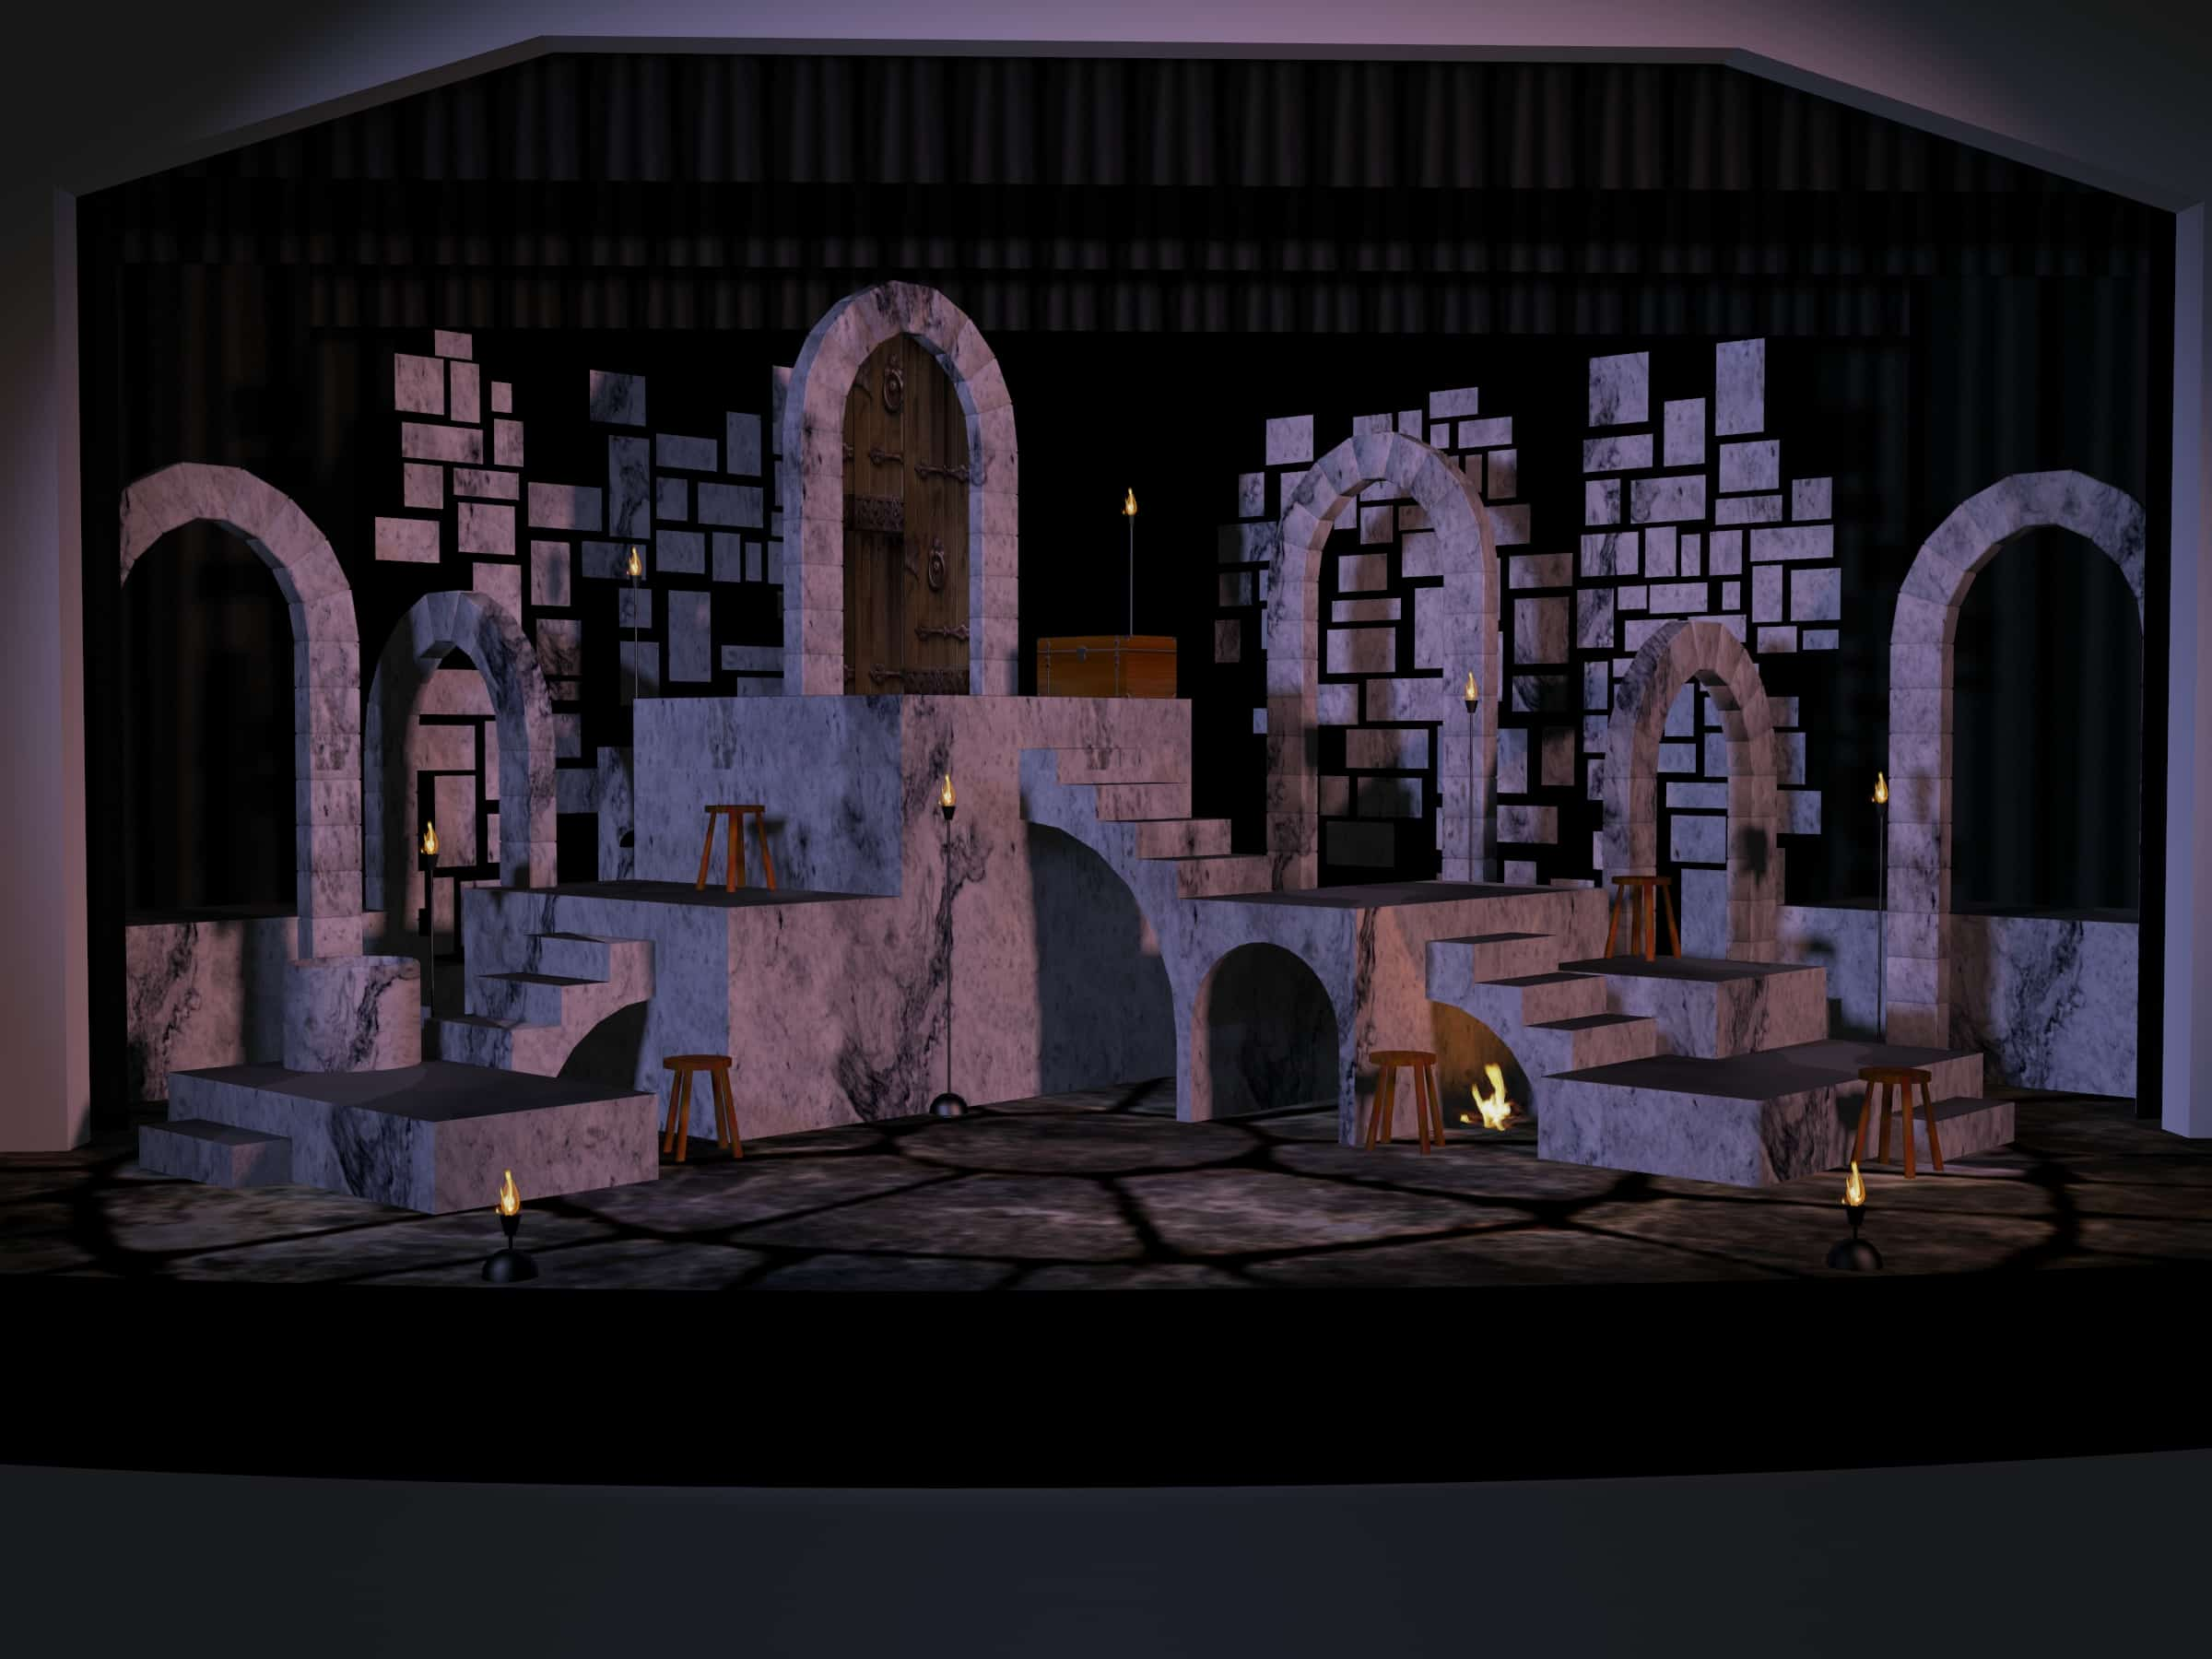 Digital set rendering for Man of La Mancha. Stone arches, flicker-flame torches, a fire burns under a staircase.